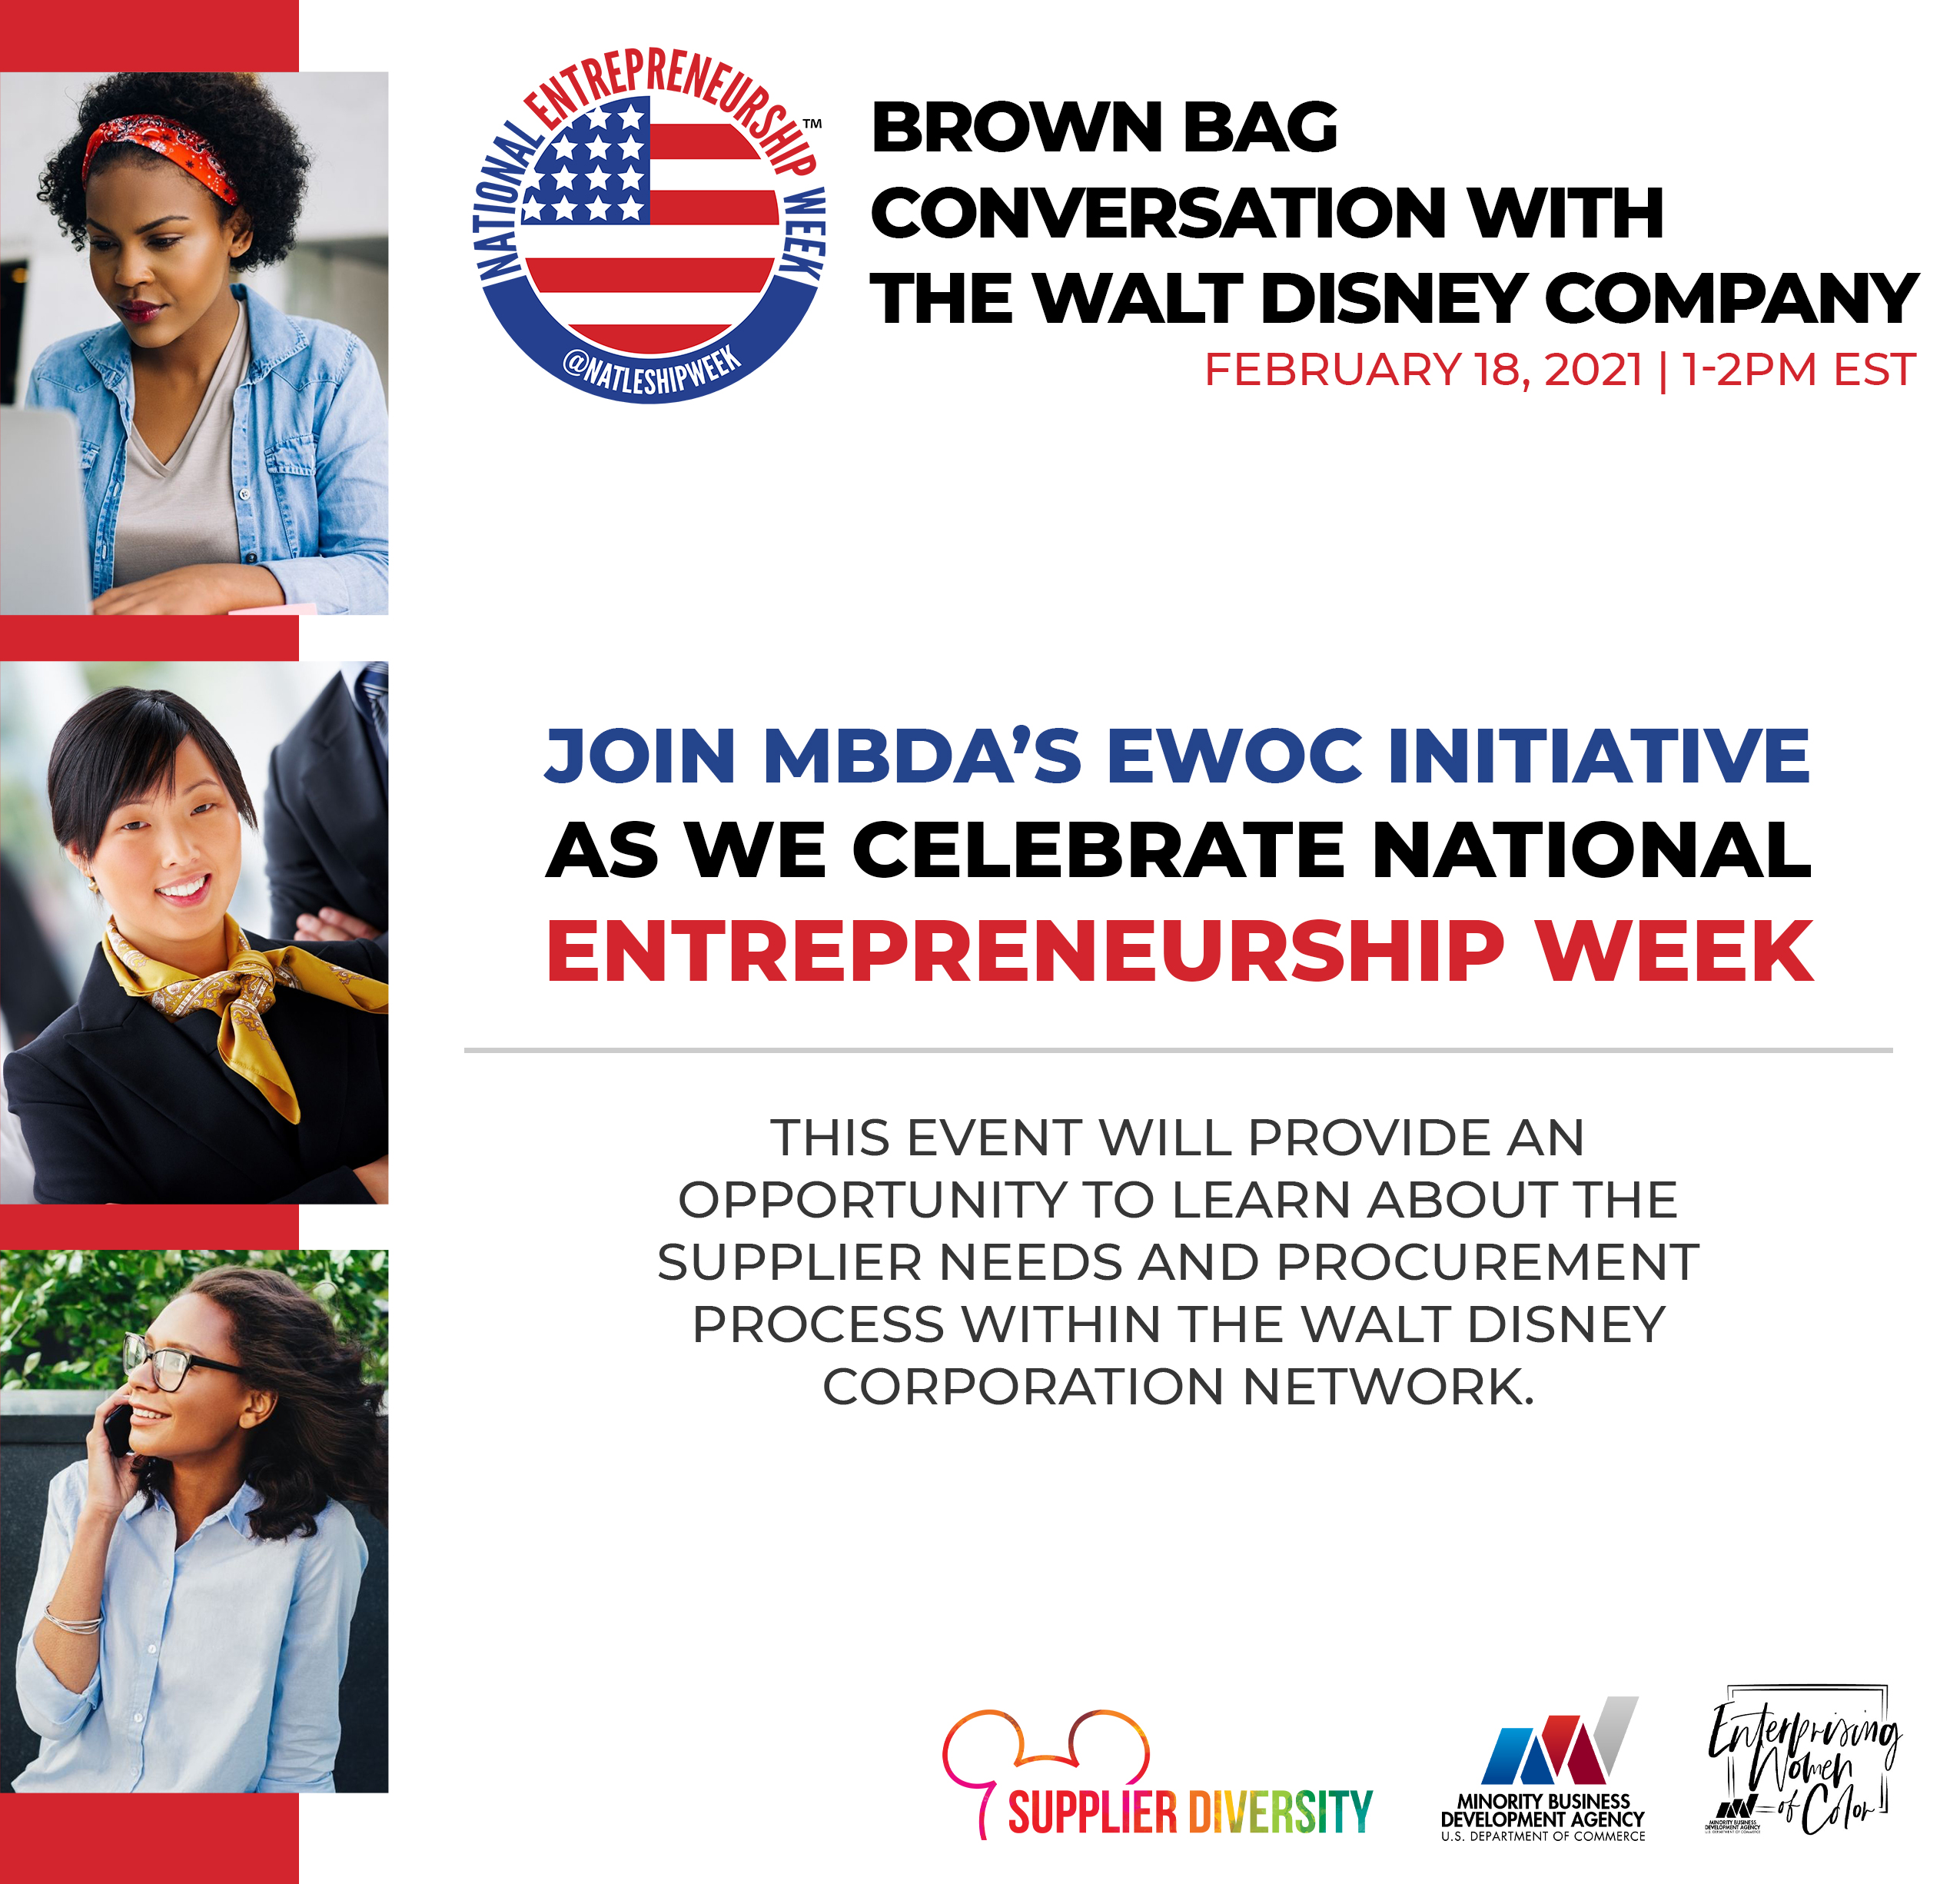 Brown Bag Conversation With The Walt Disney Company